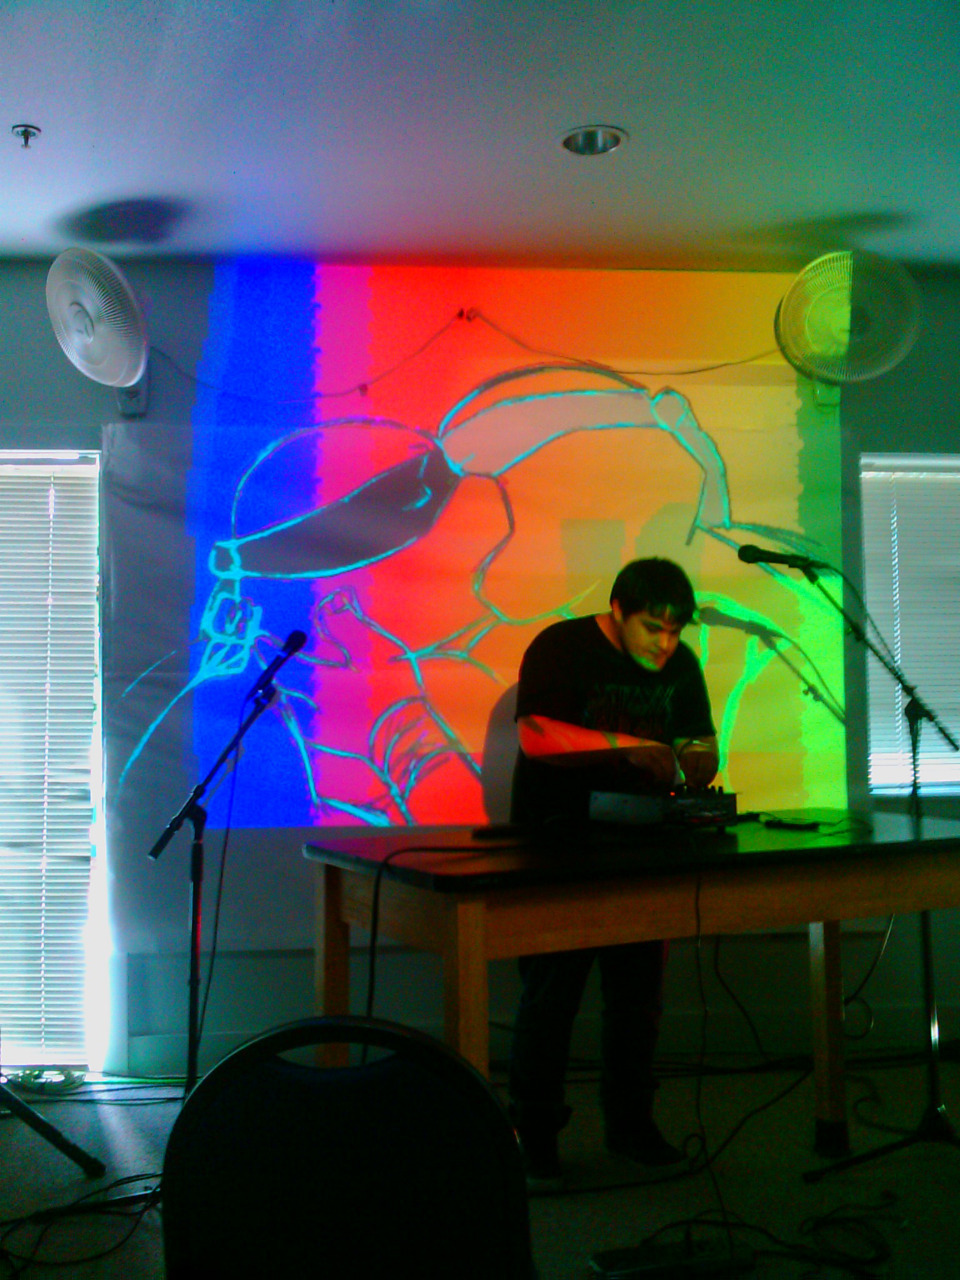 E.N.Cowell performing with Starpause on visuals as ninja turtles make out and we watch in what is normally a 5th grade classroom